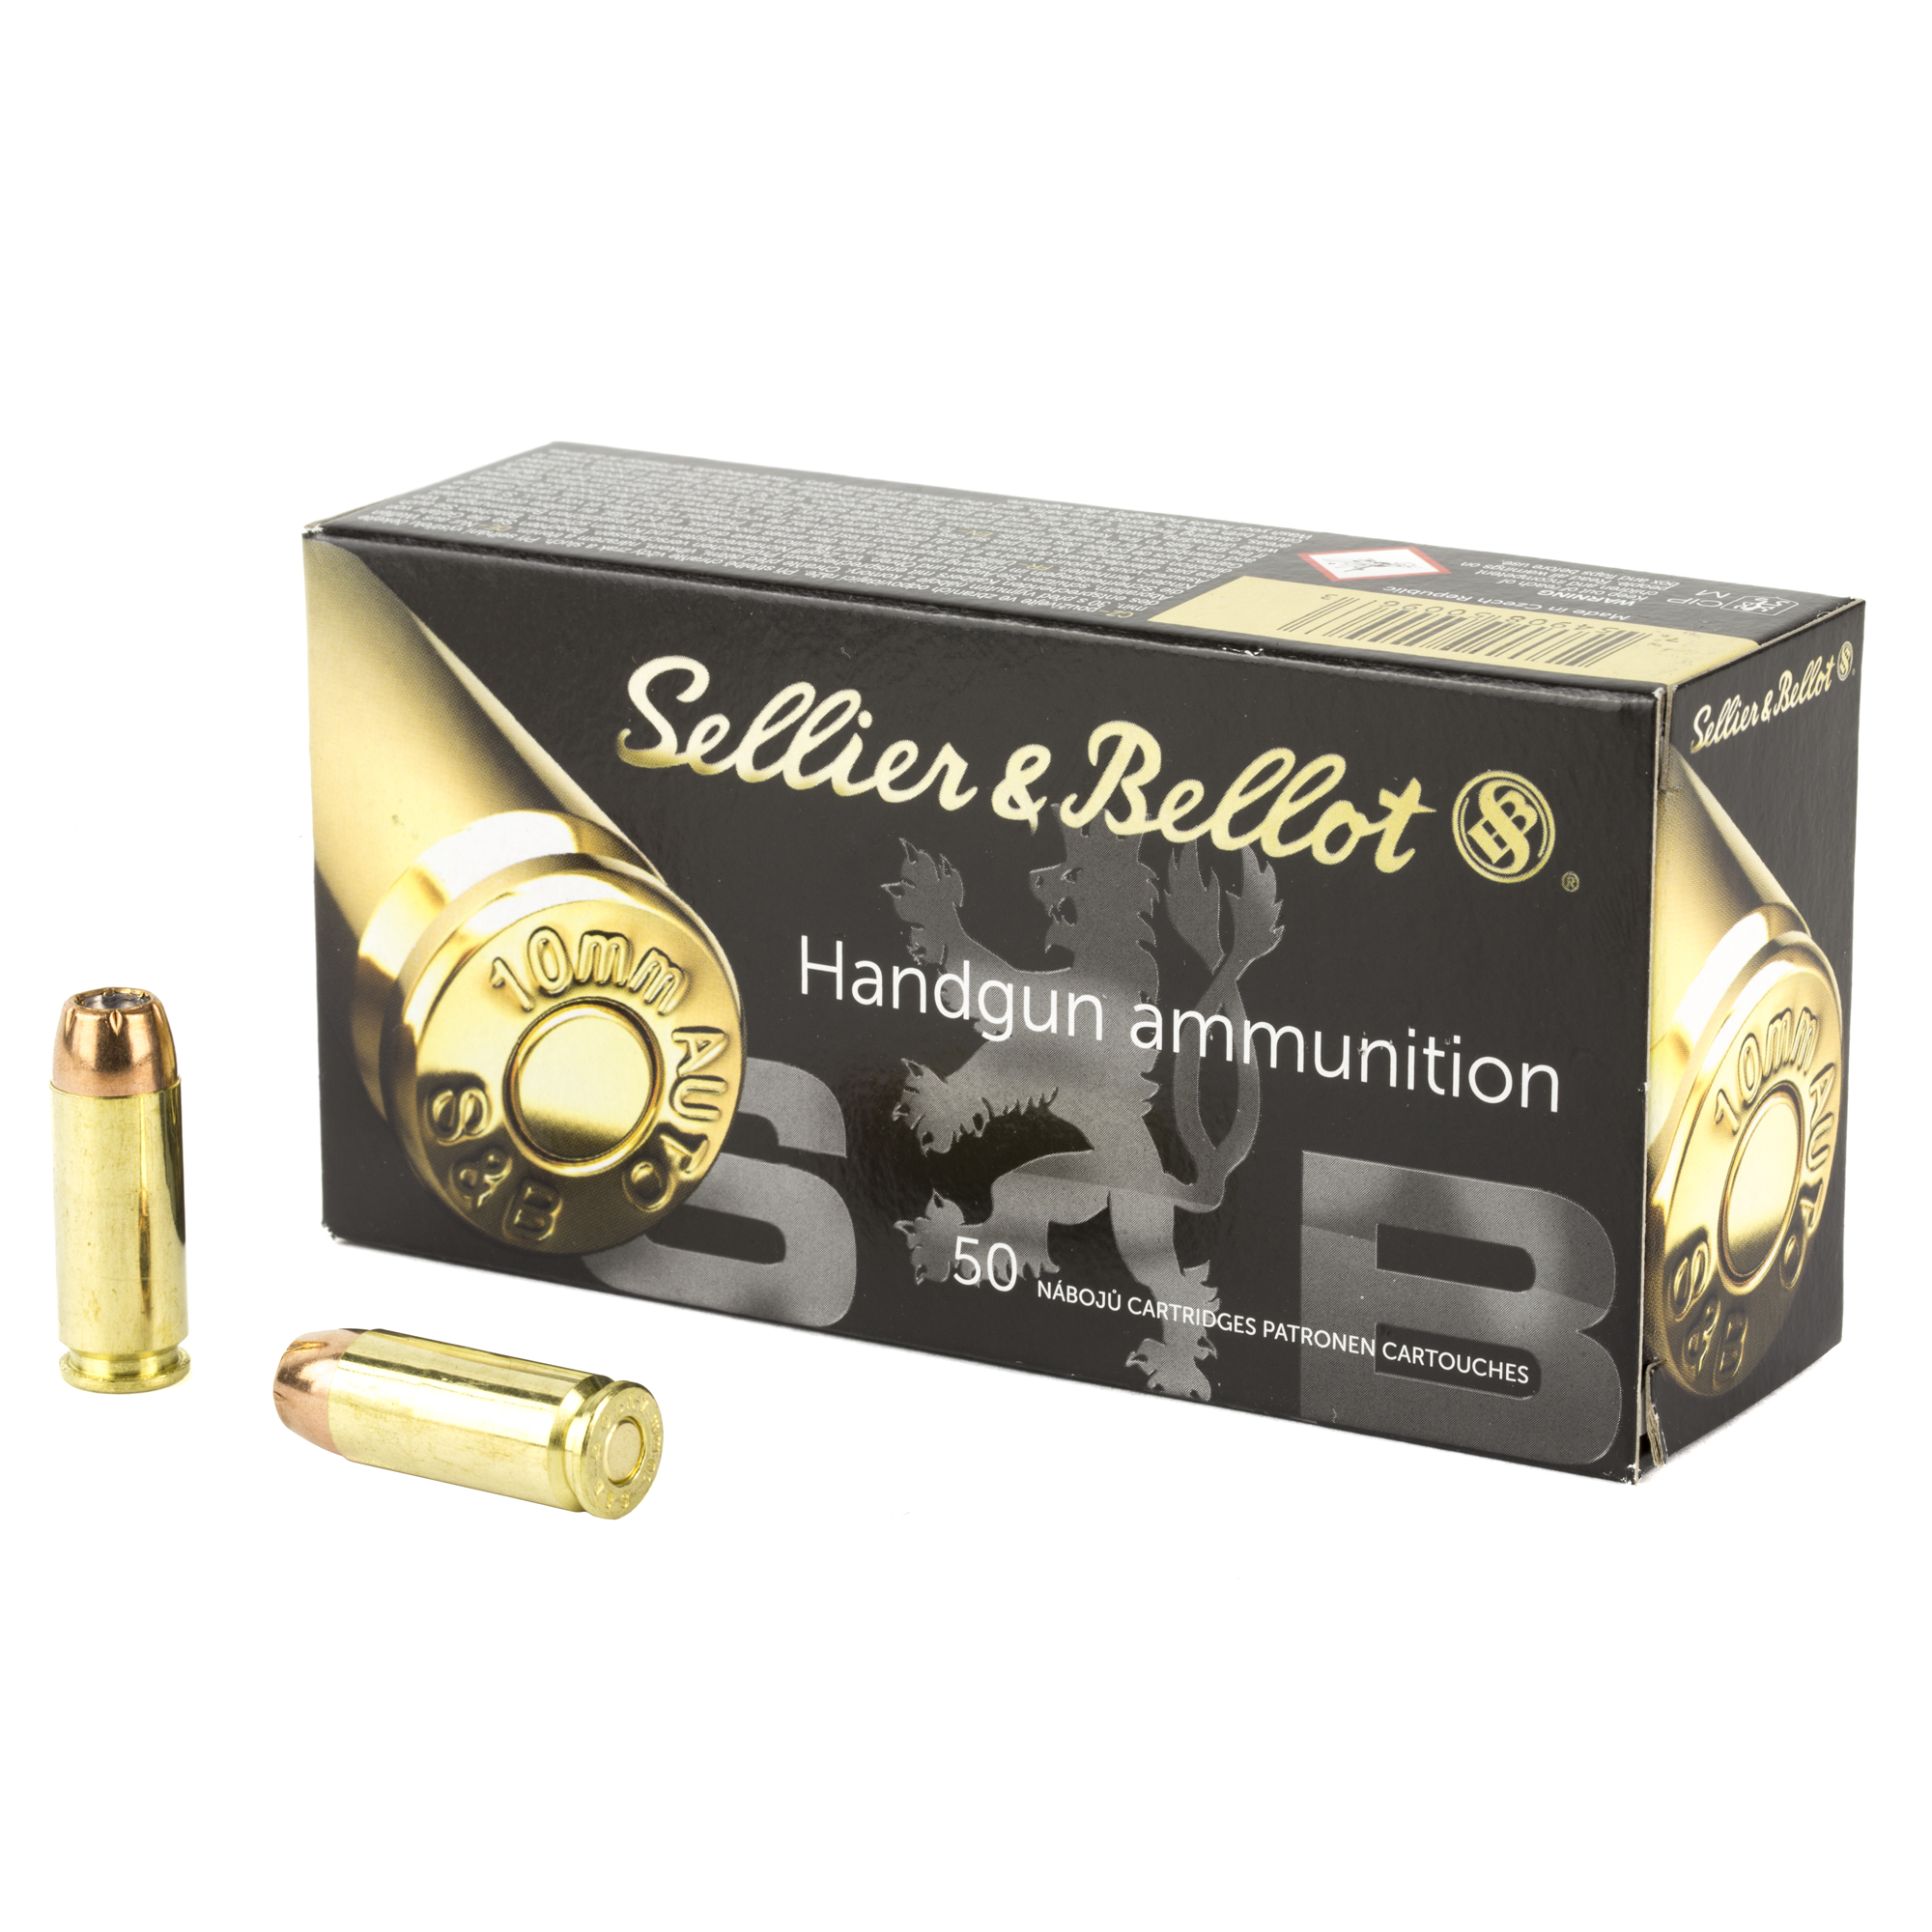 SELLIER & BELLOT 10MM 180GR JHP 50/1000 SELF DEFENSE